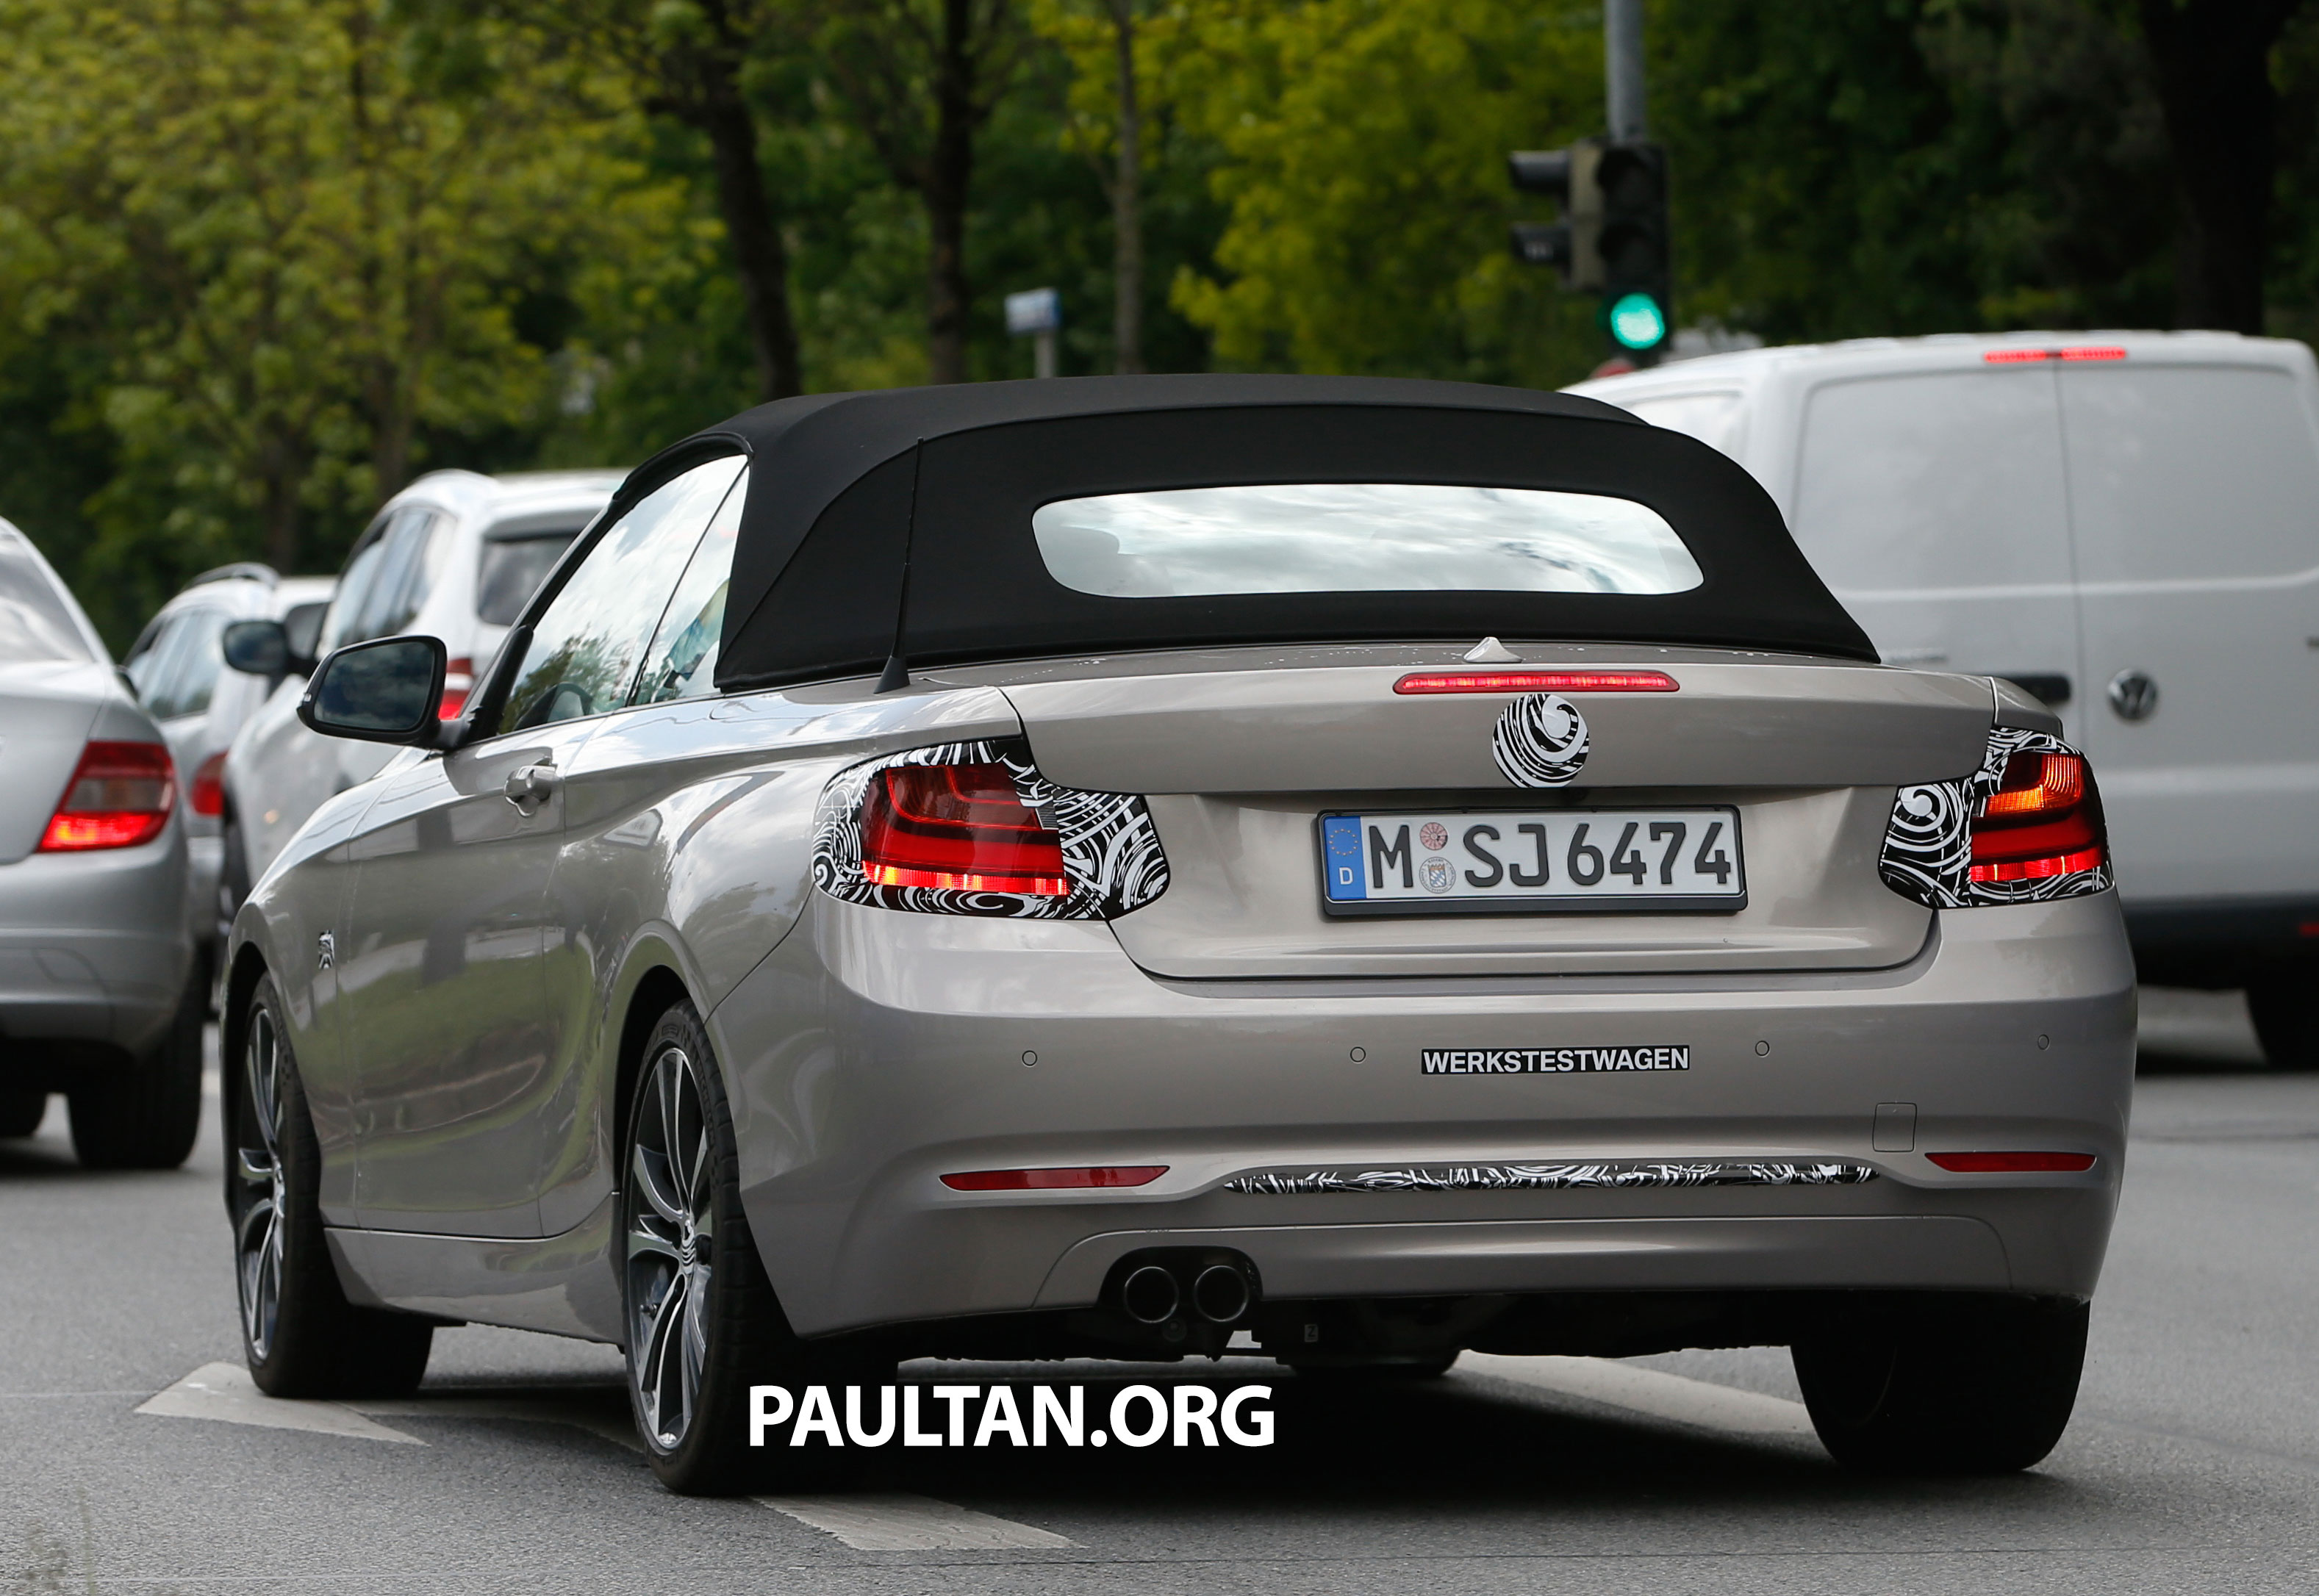 bmw 2 series cabriolet spied nearly undisguised image 248308. Black Bedroom Furniture Sets. Home Design Ideas